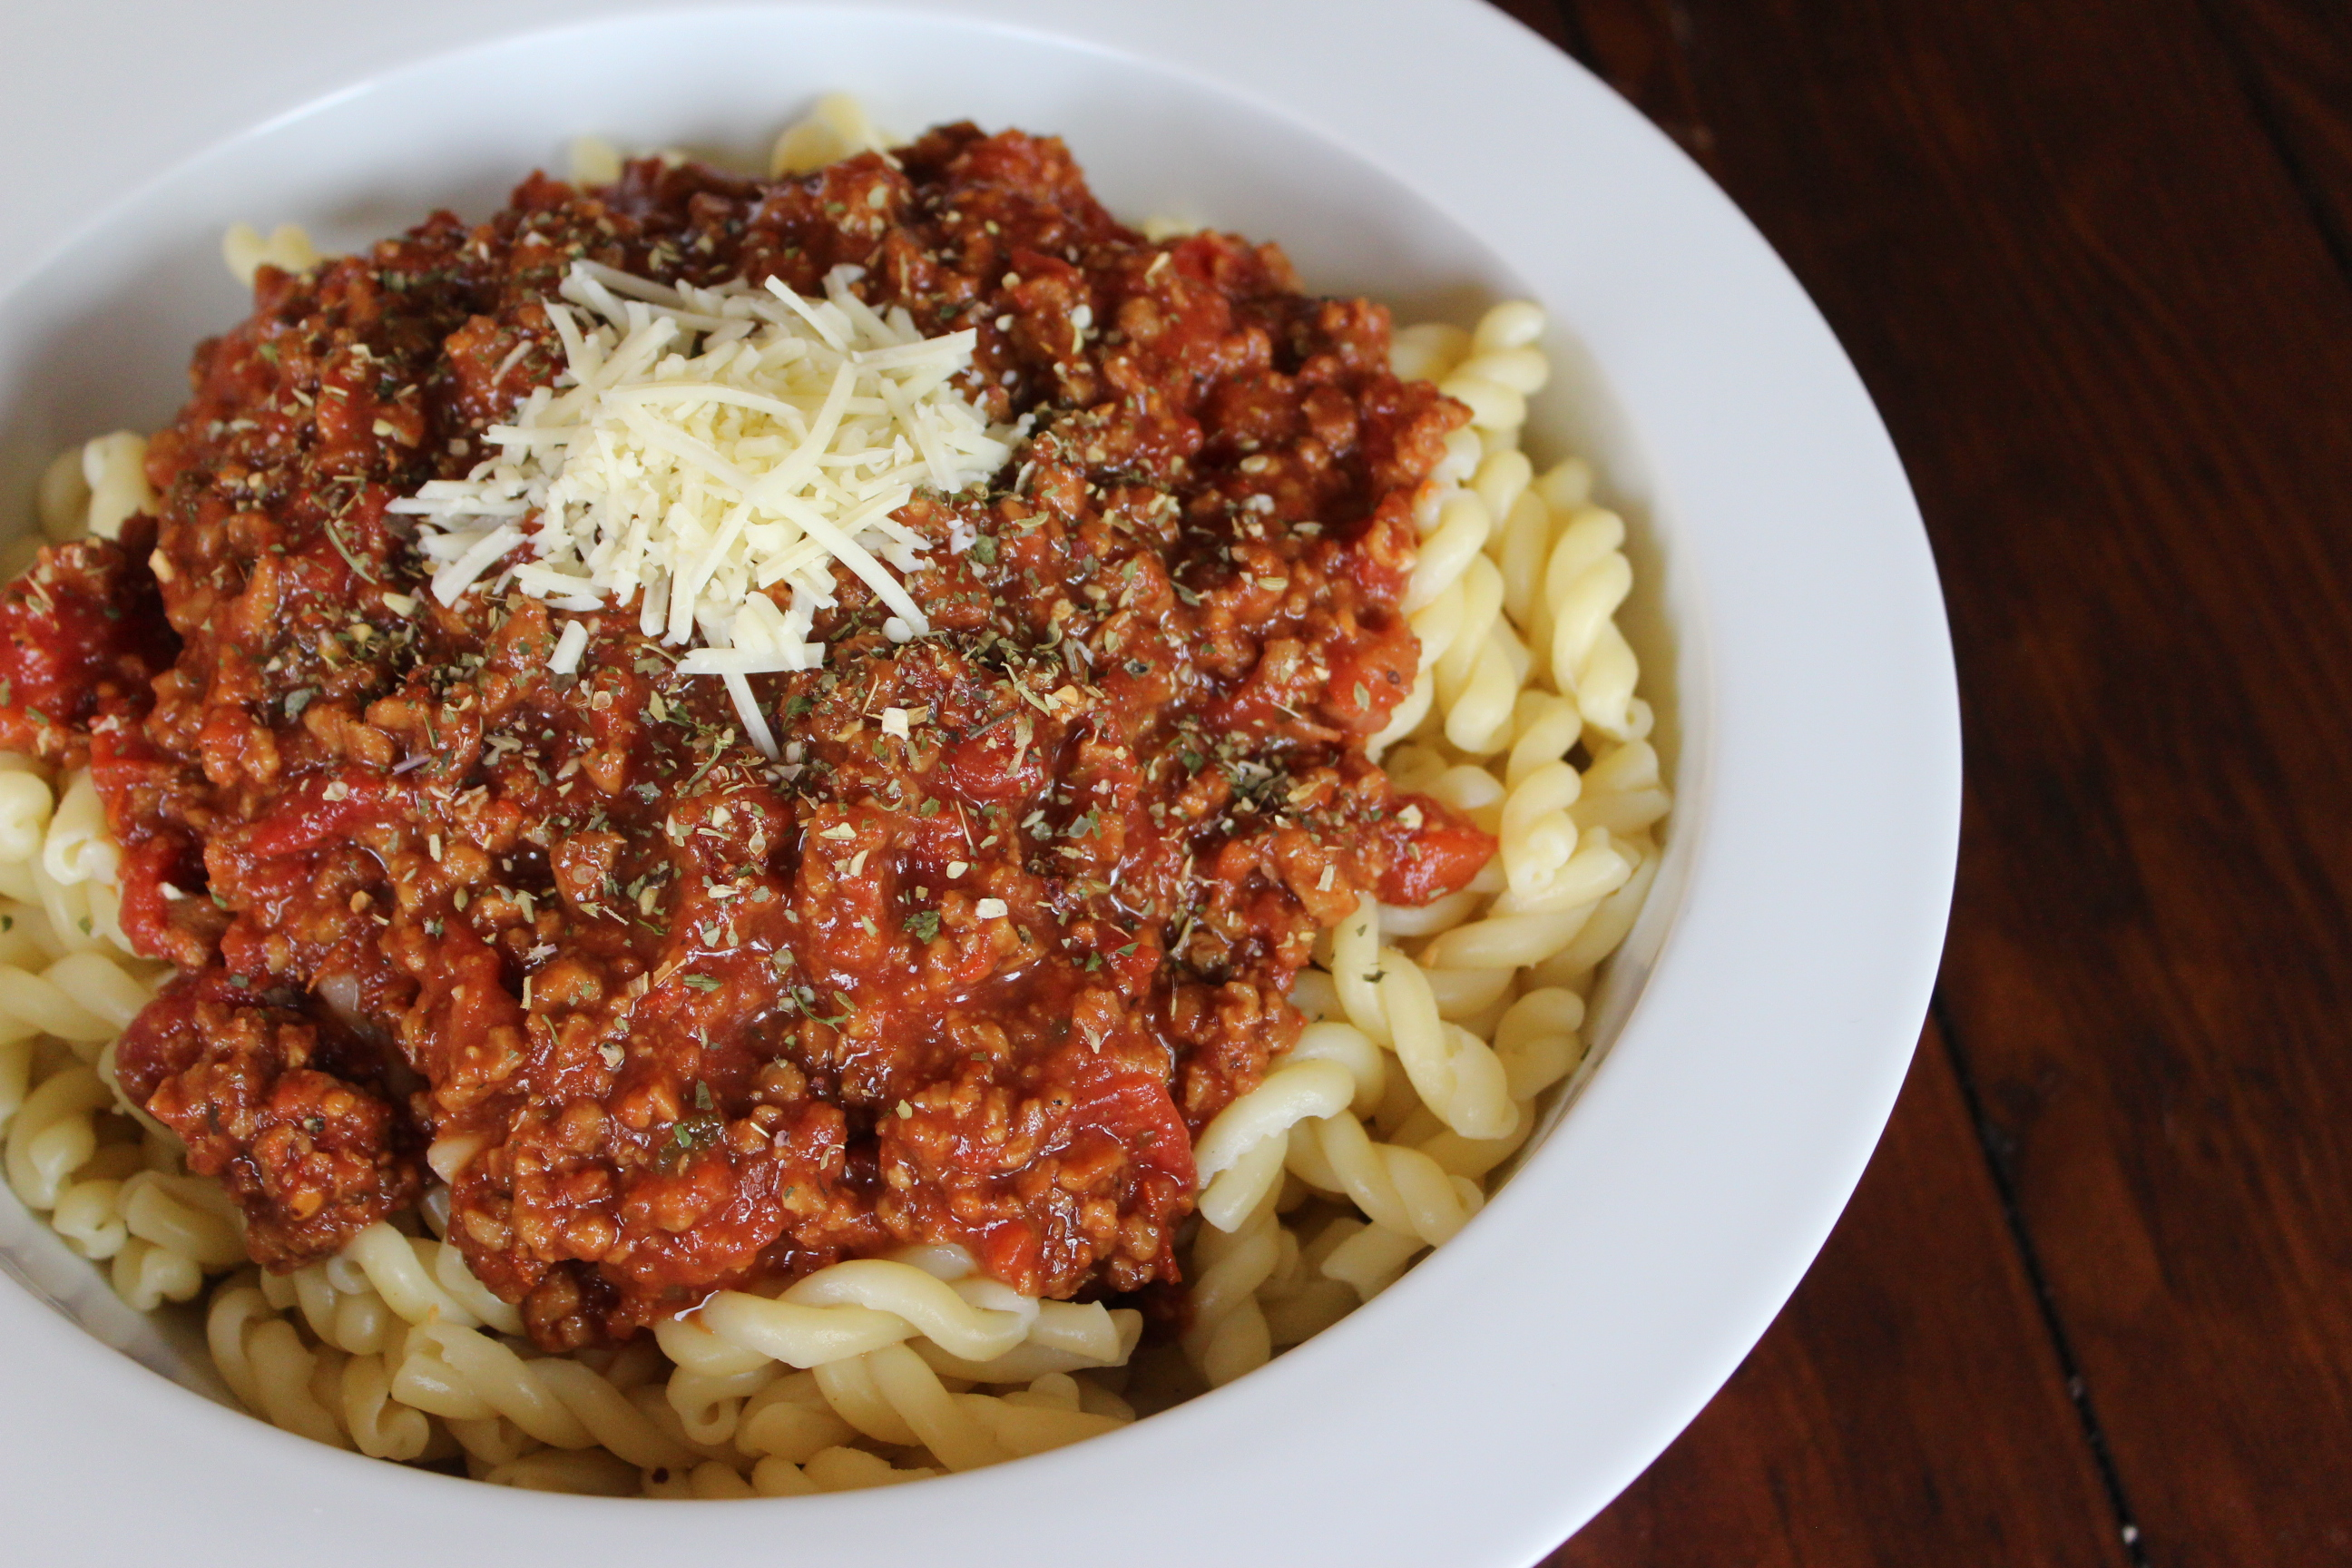 Fusilli with Spicy Meat Sauce